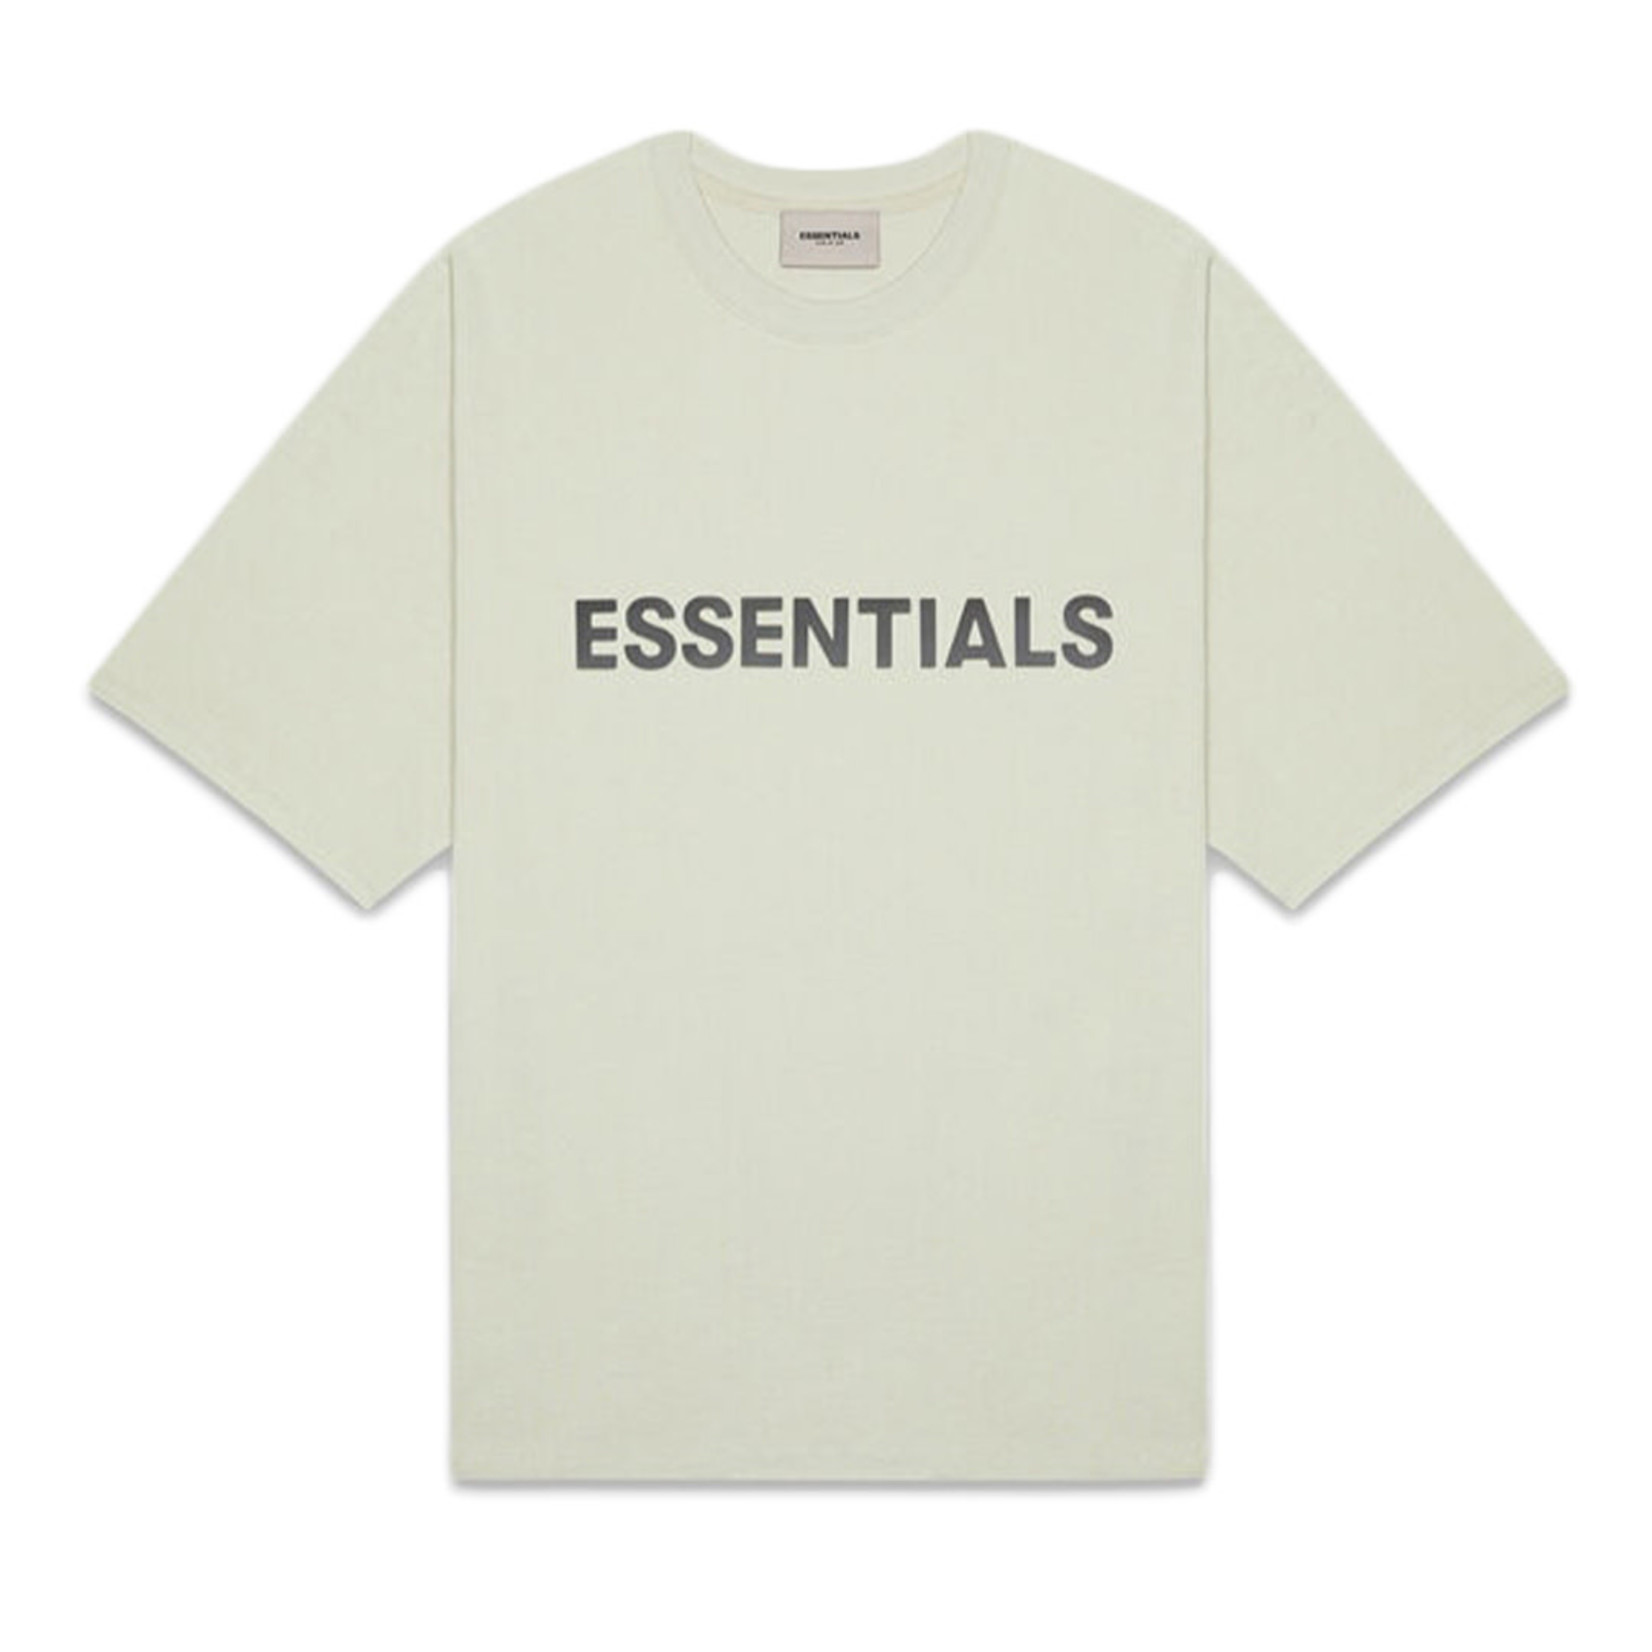 Consignment Fear of God Essentials Tee (C)